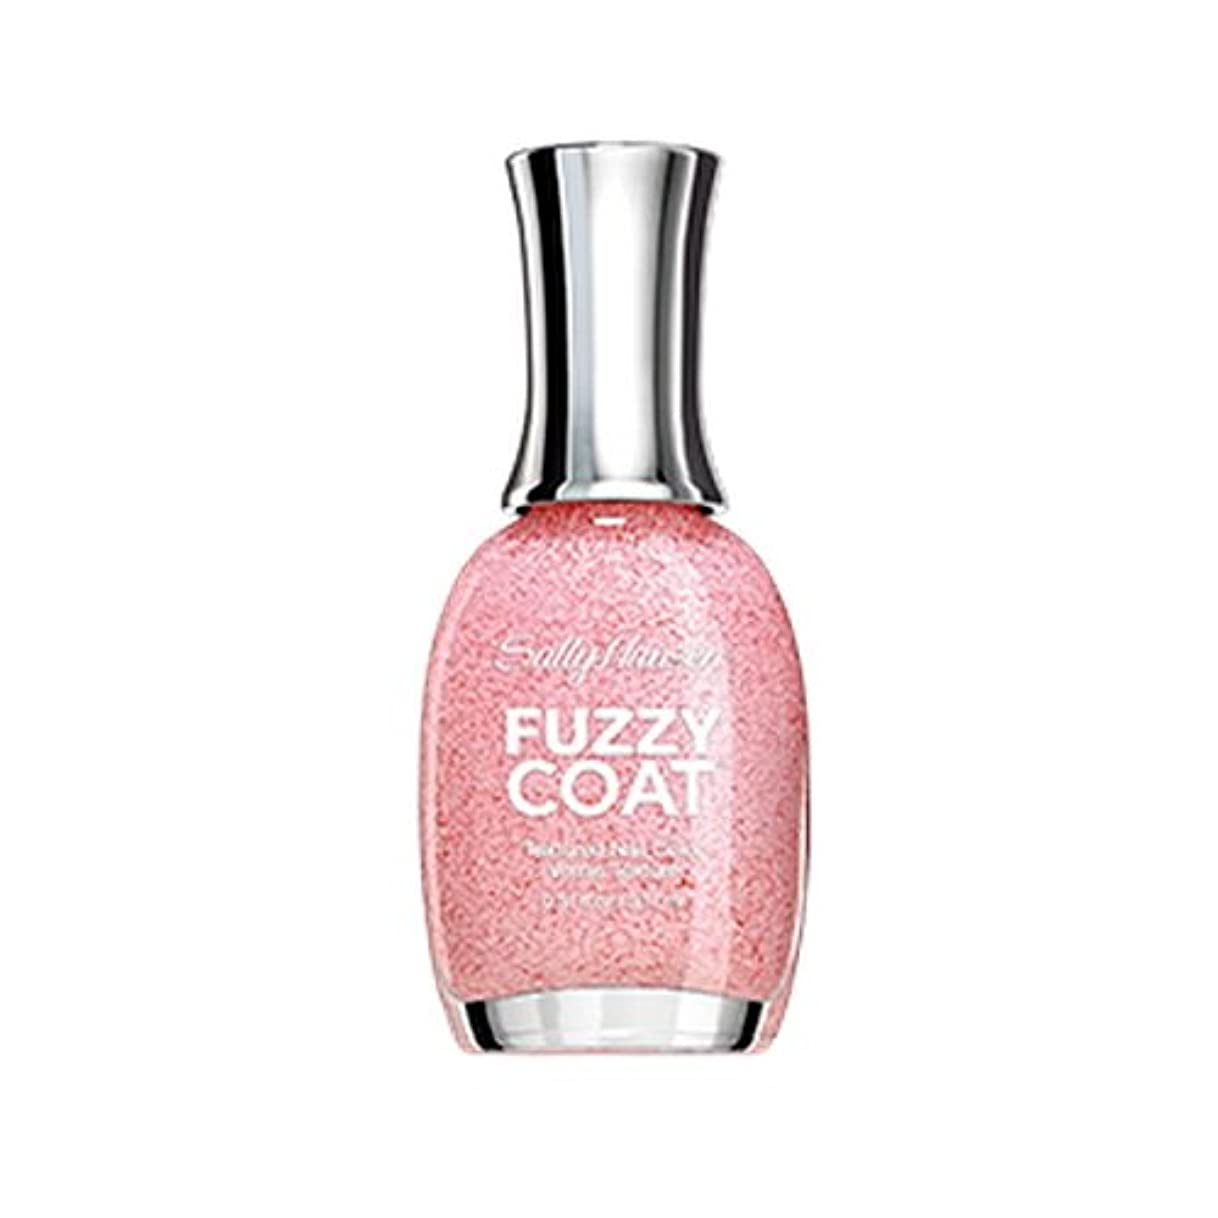 喉が渇いたポットあさりSALLY HANSEN Fuzzy Coat Special Effect Textured Nail Color - Wool Lite (並行輸入品)